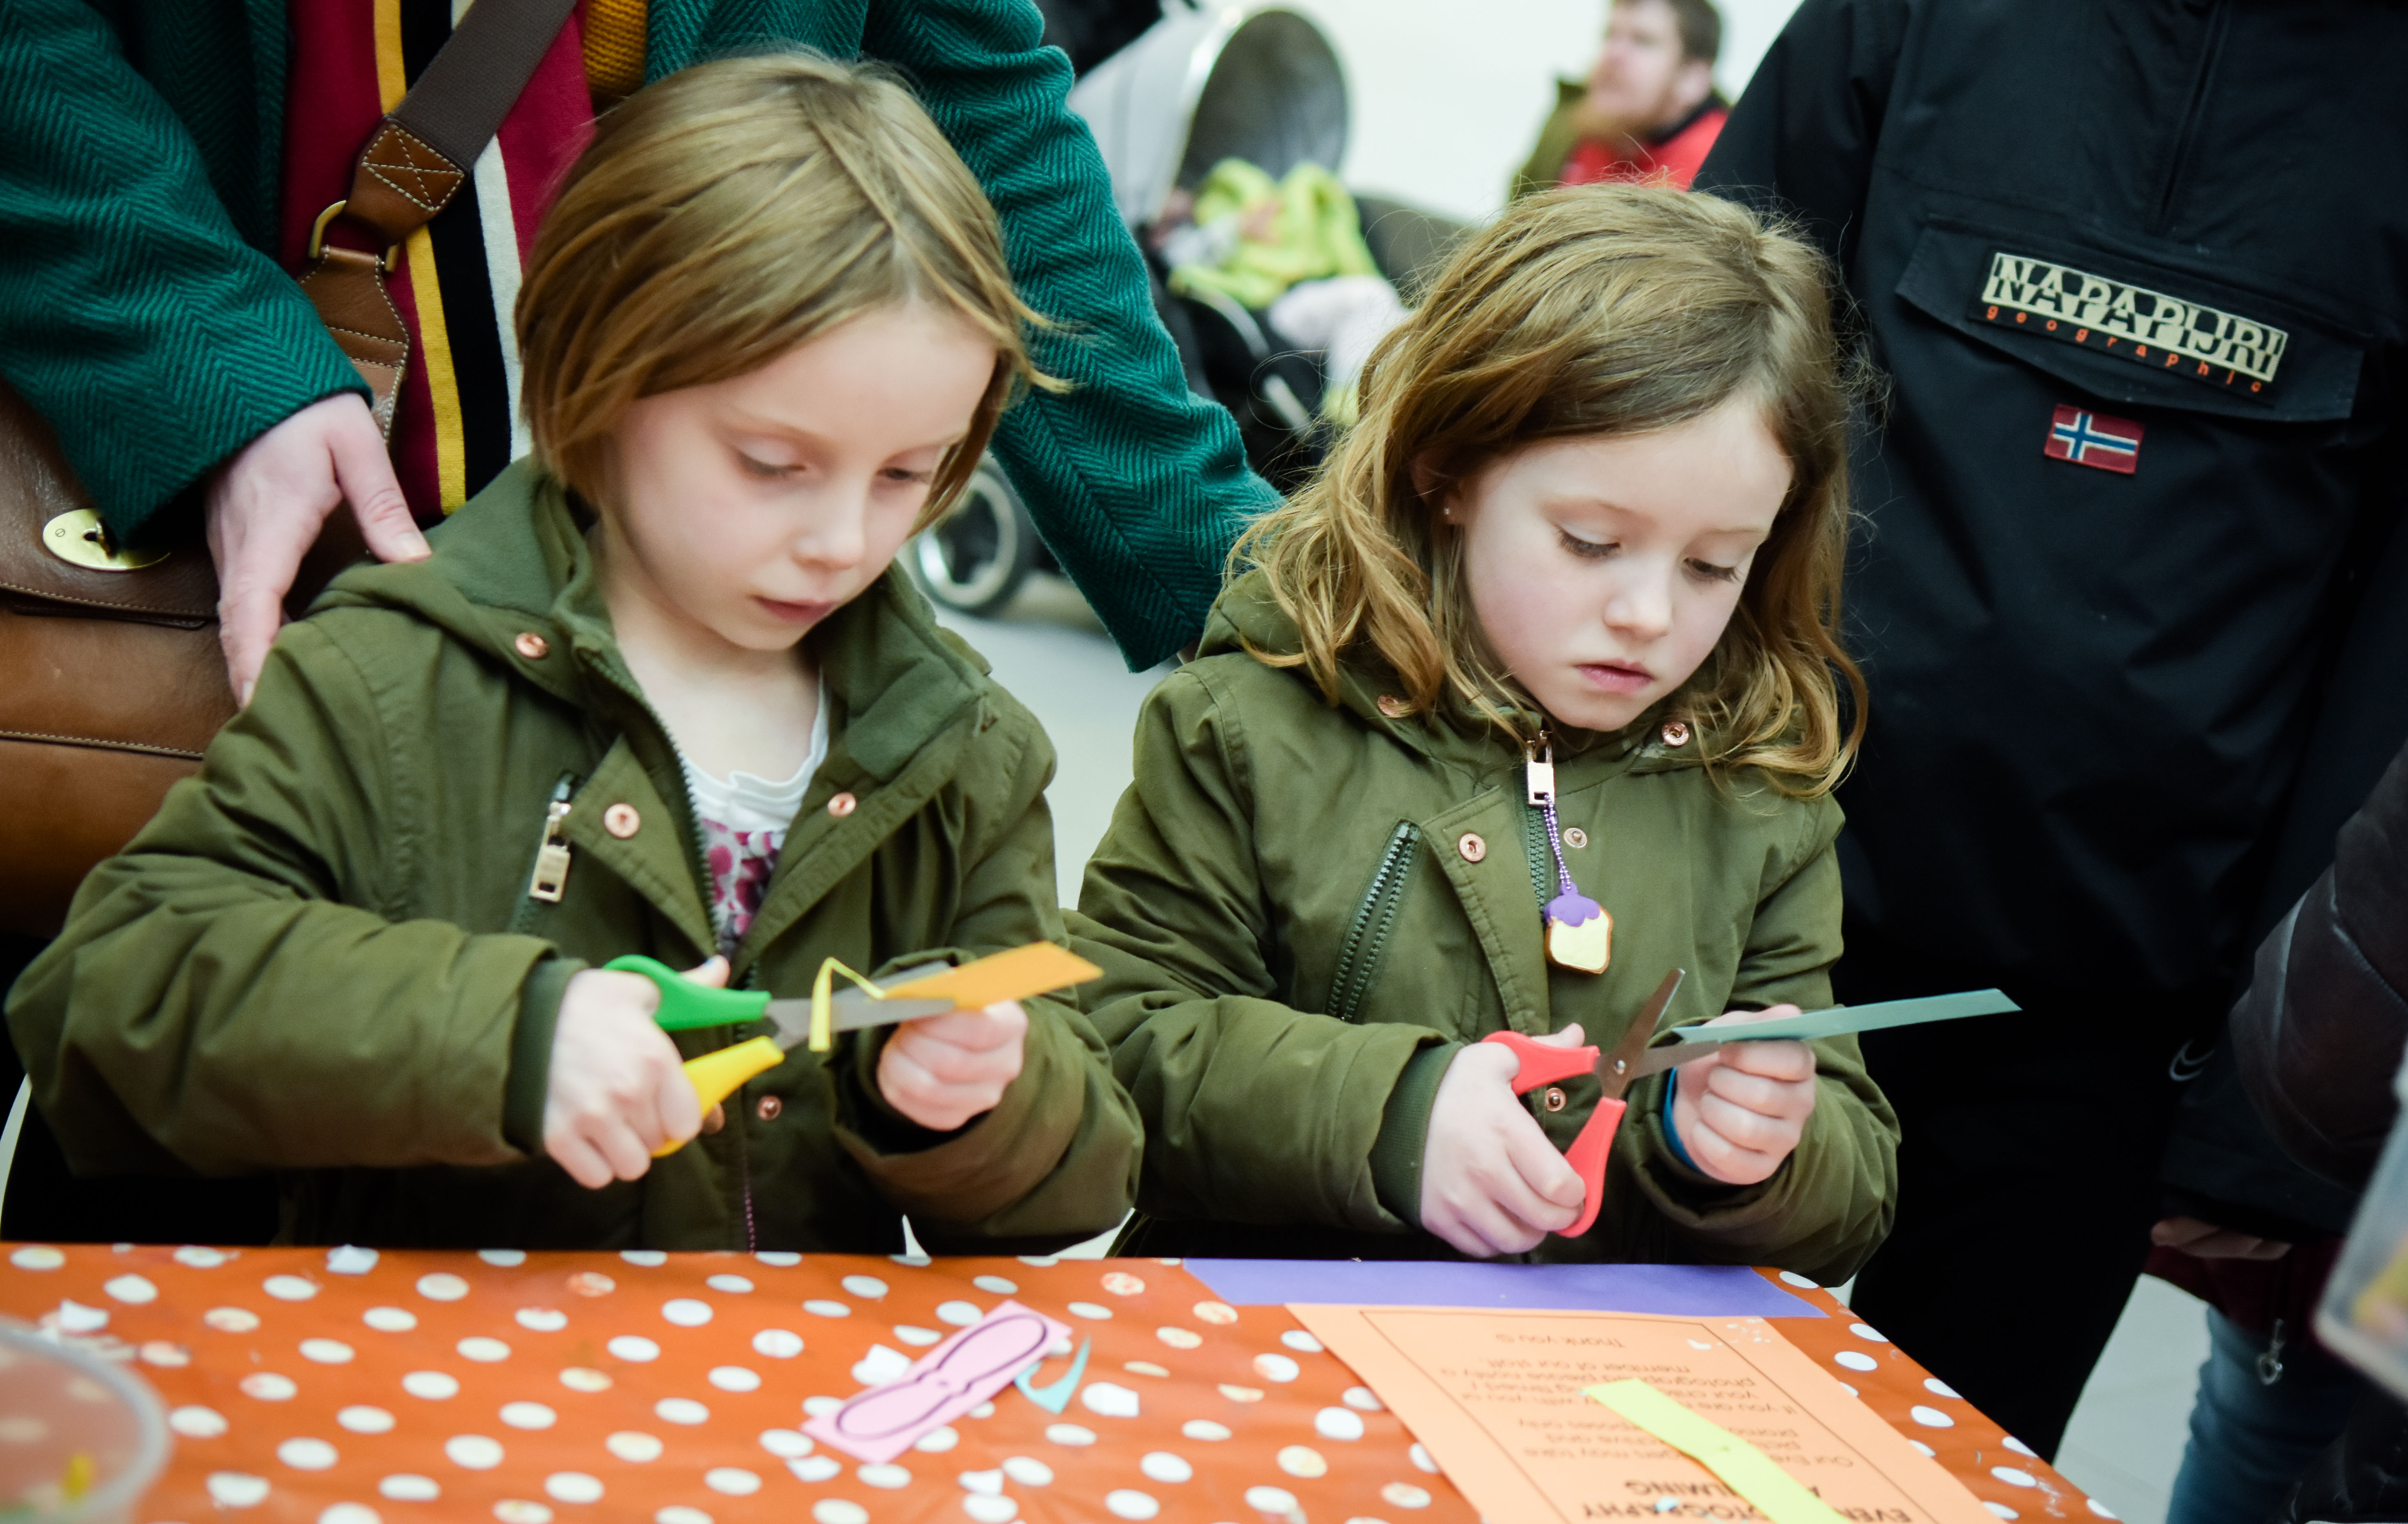 Da Vinci Day at The Ulster Museum